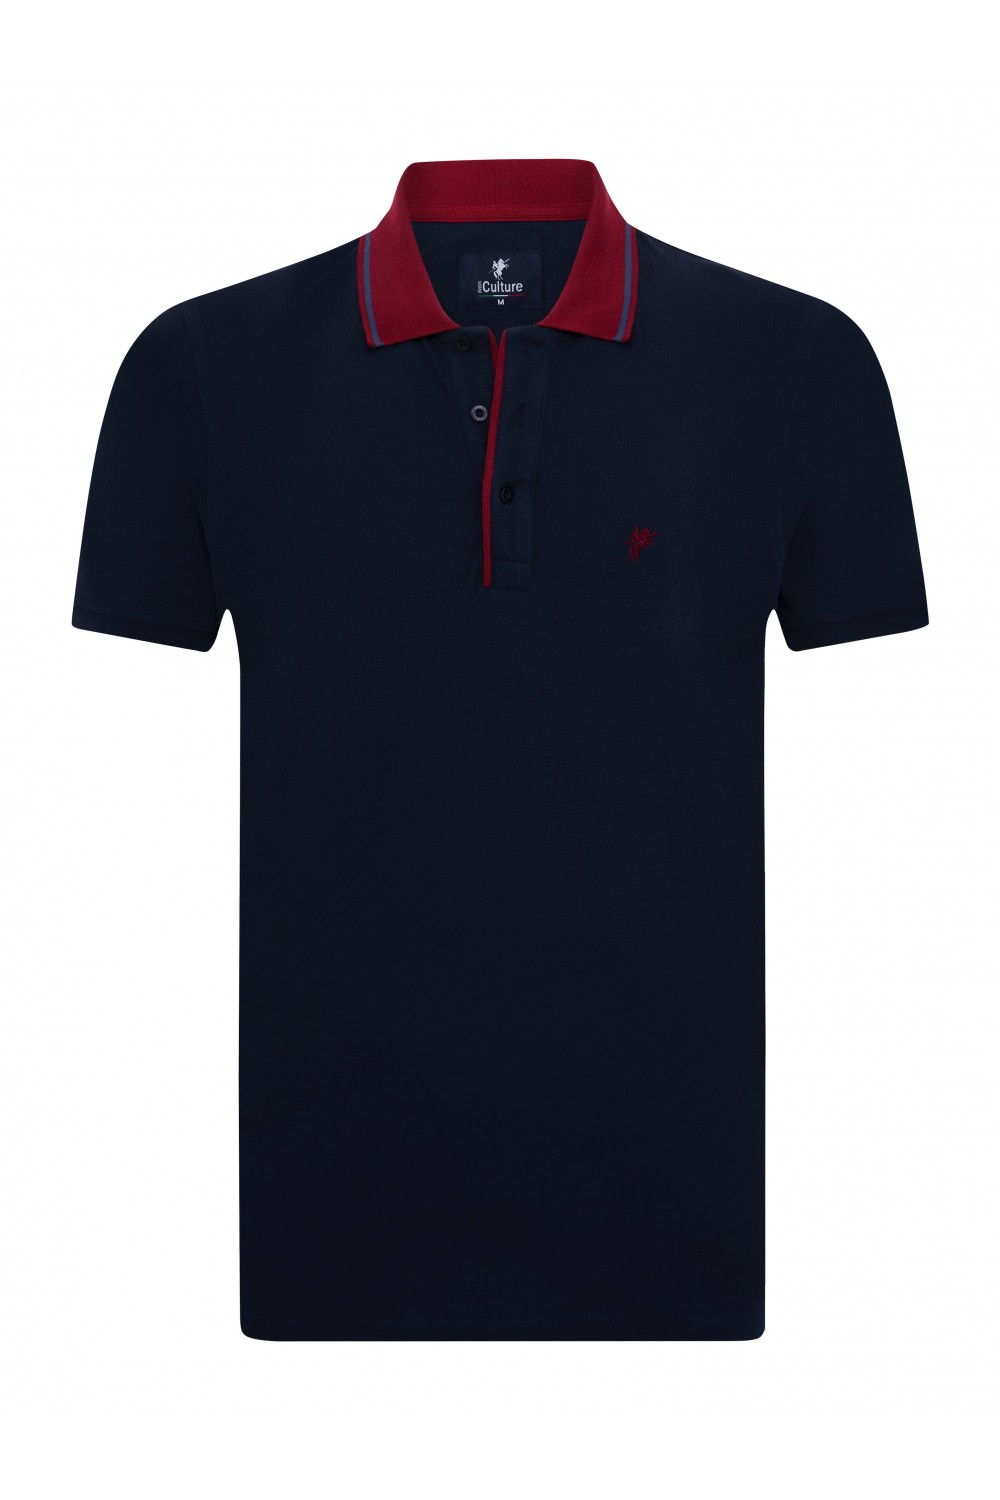 Men's Poloshirt Knitted Navy-Bordeaux Cotton